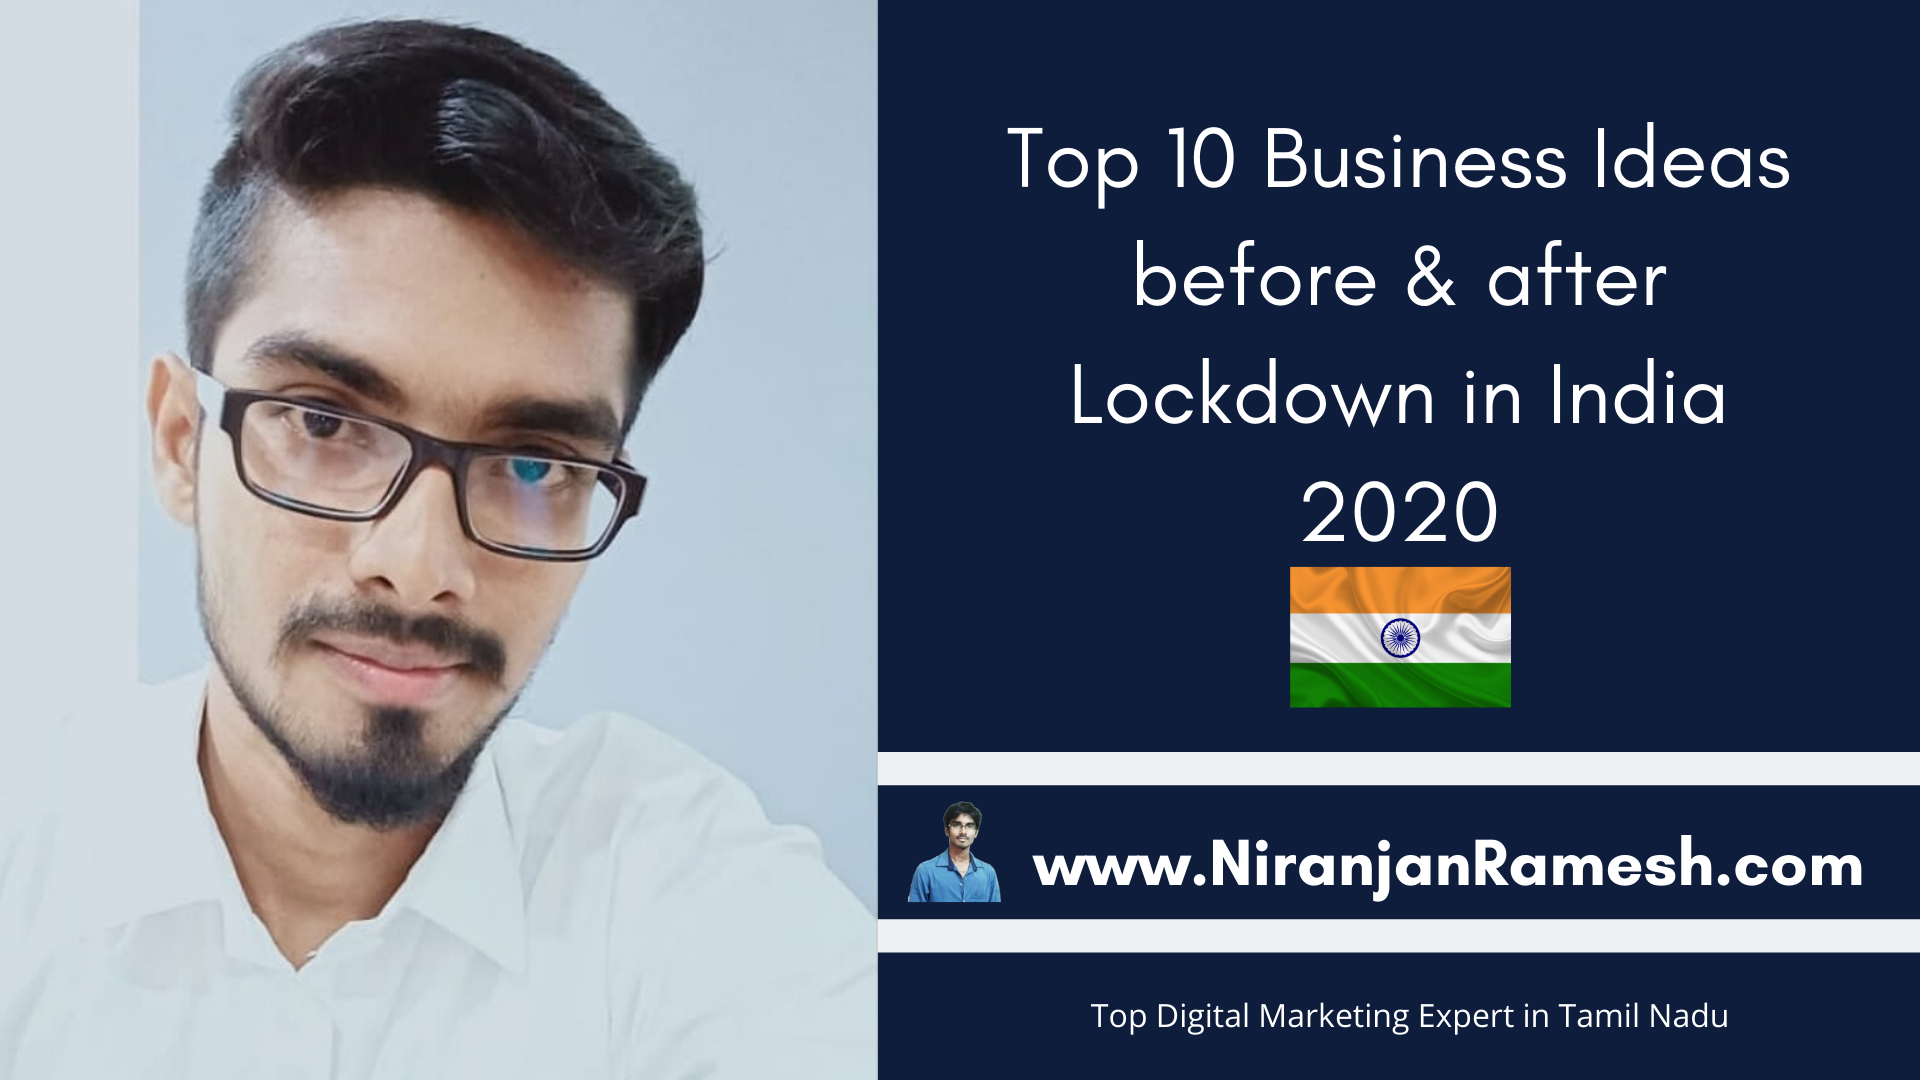 Top 10 Business Ideas before & after Lock down in India 2020